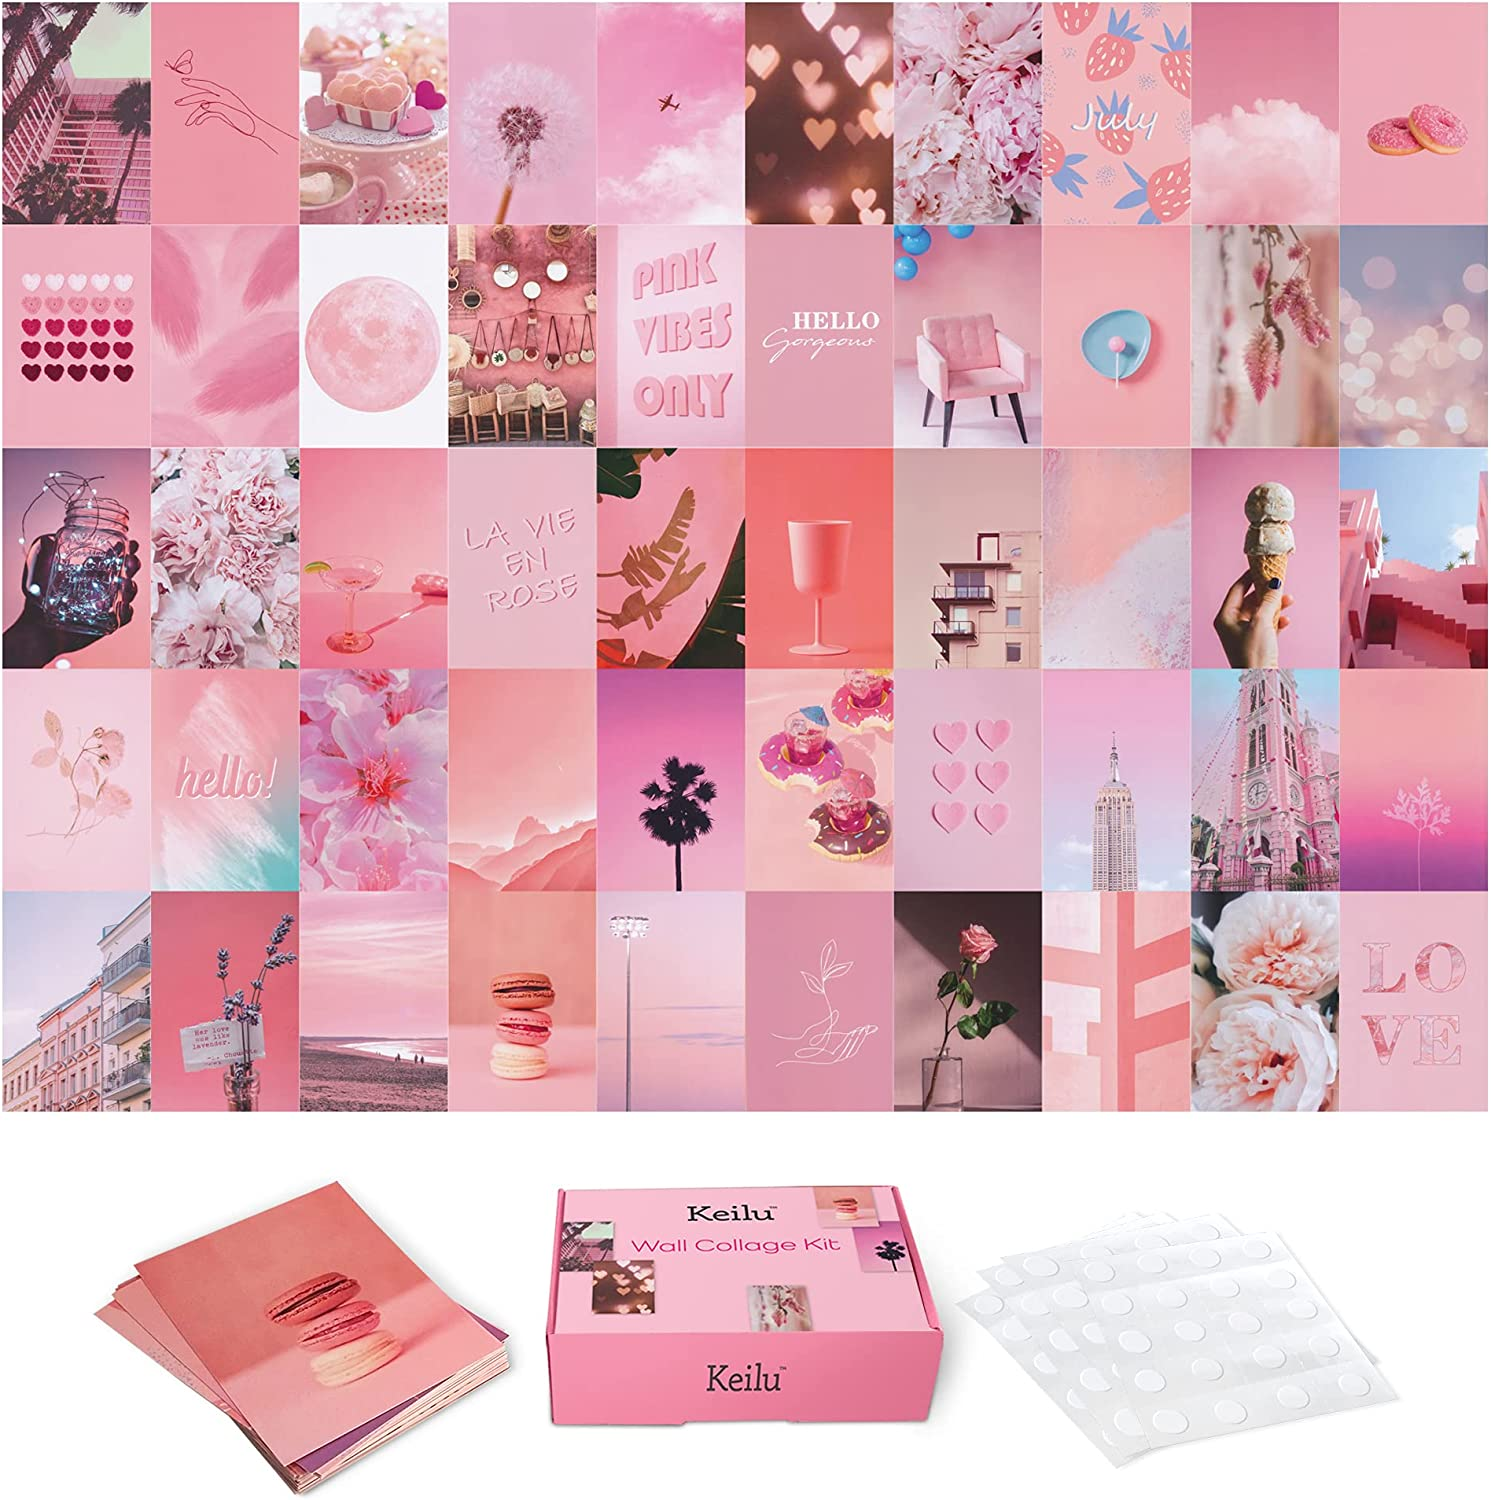 Keilu Pink Room Decor Aesthetic - Photo wall collage kit for wall aesthetic decor. This picture wall collage set adds PINK wall decor to any teen room wall. 50 4x6 posters for room aesthetic.